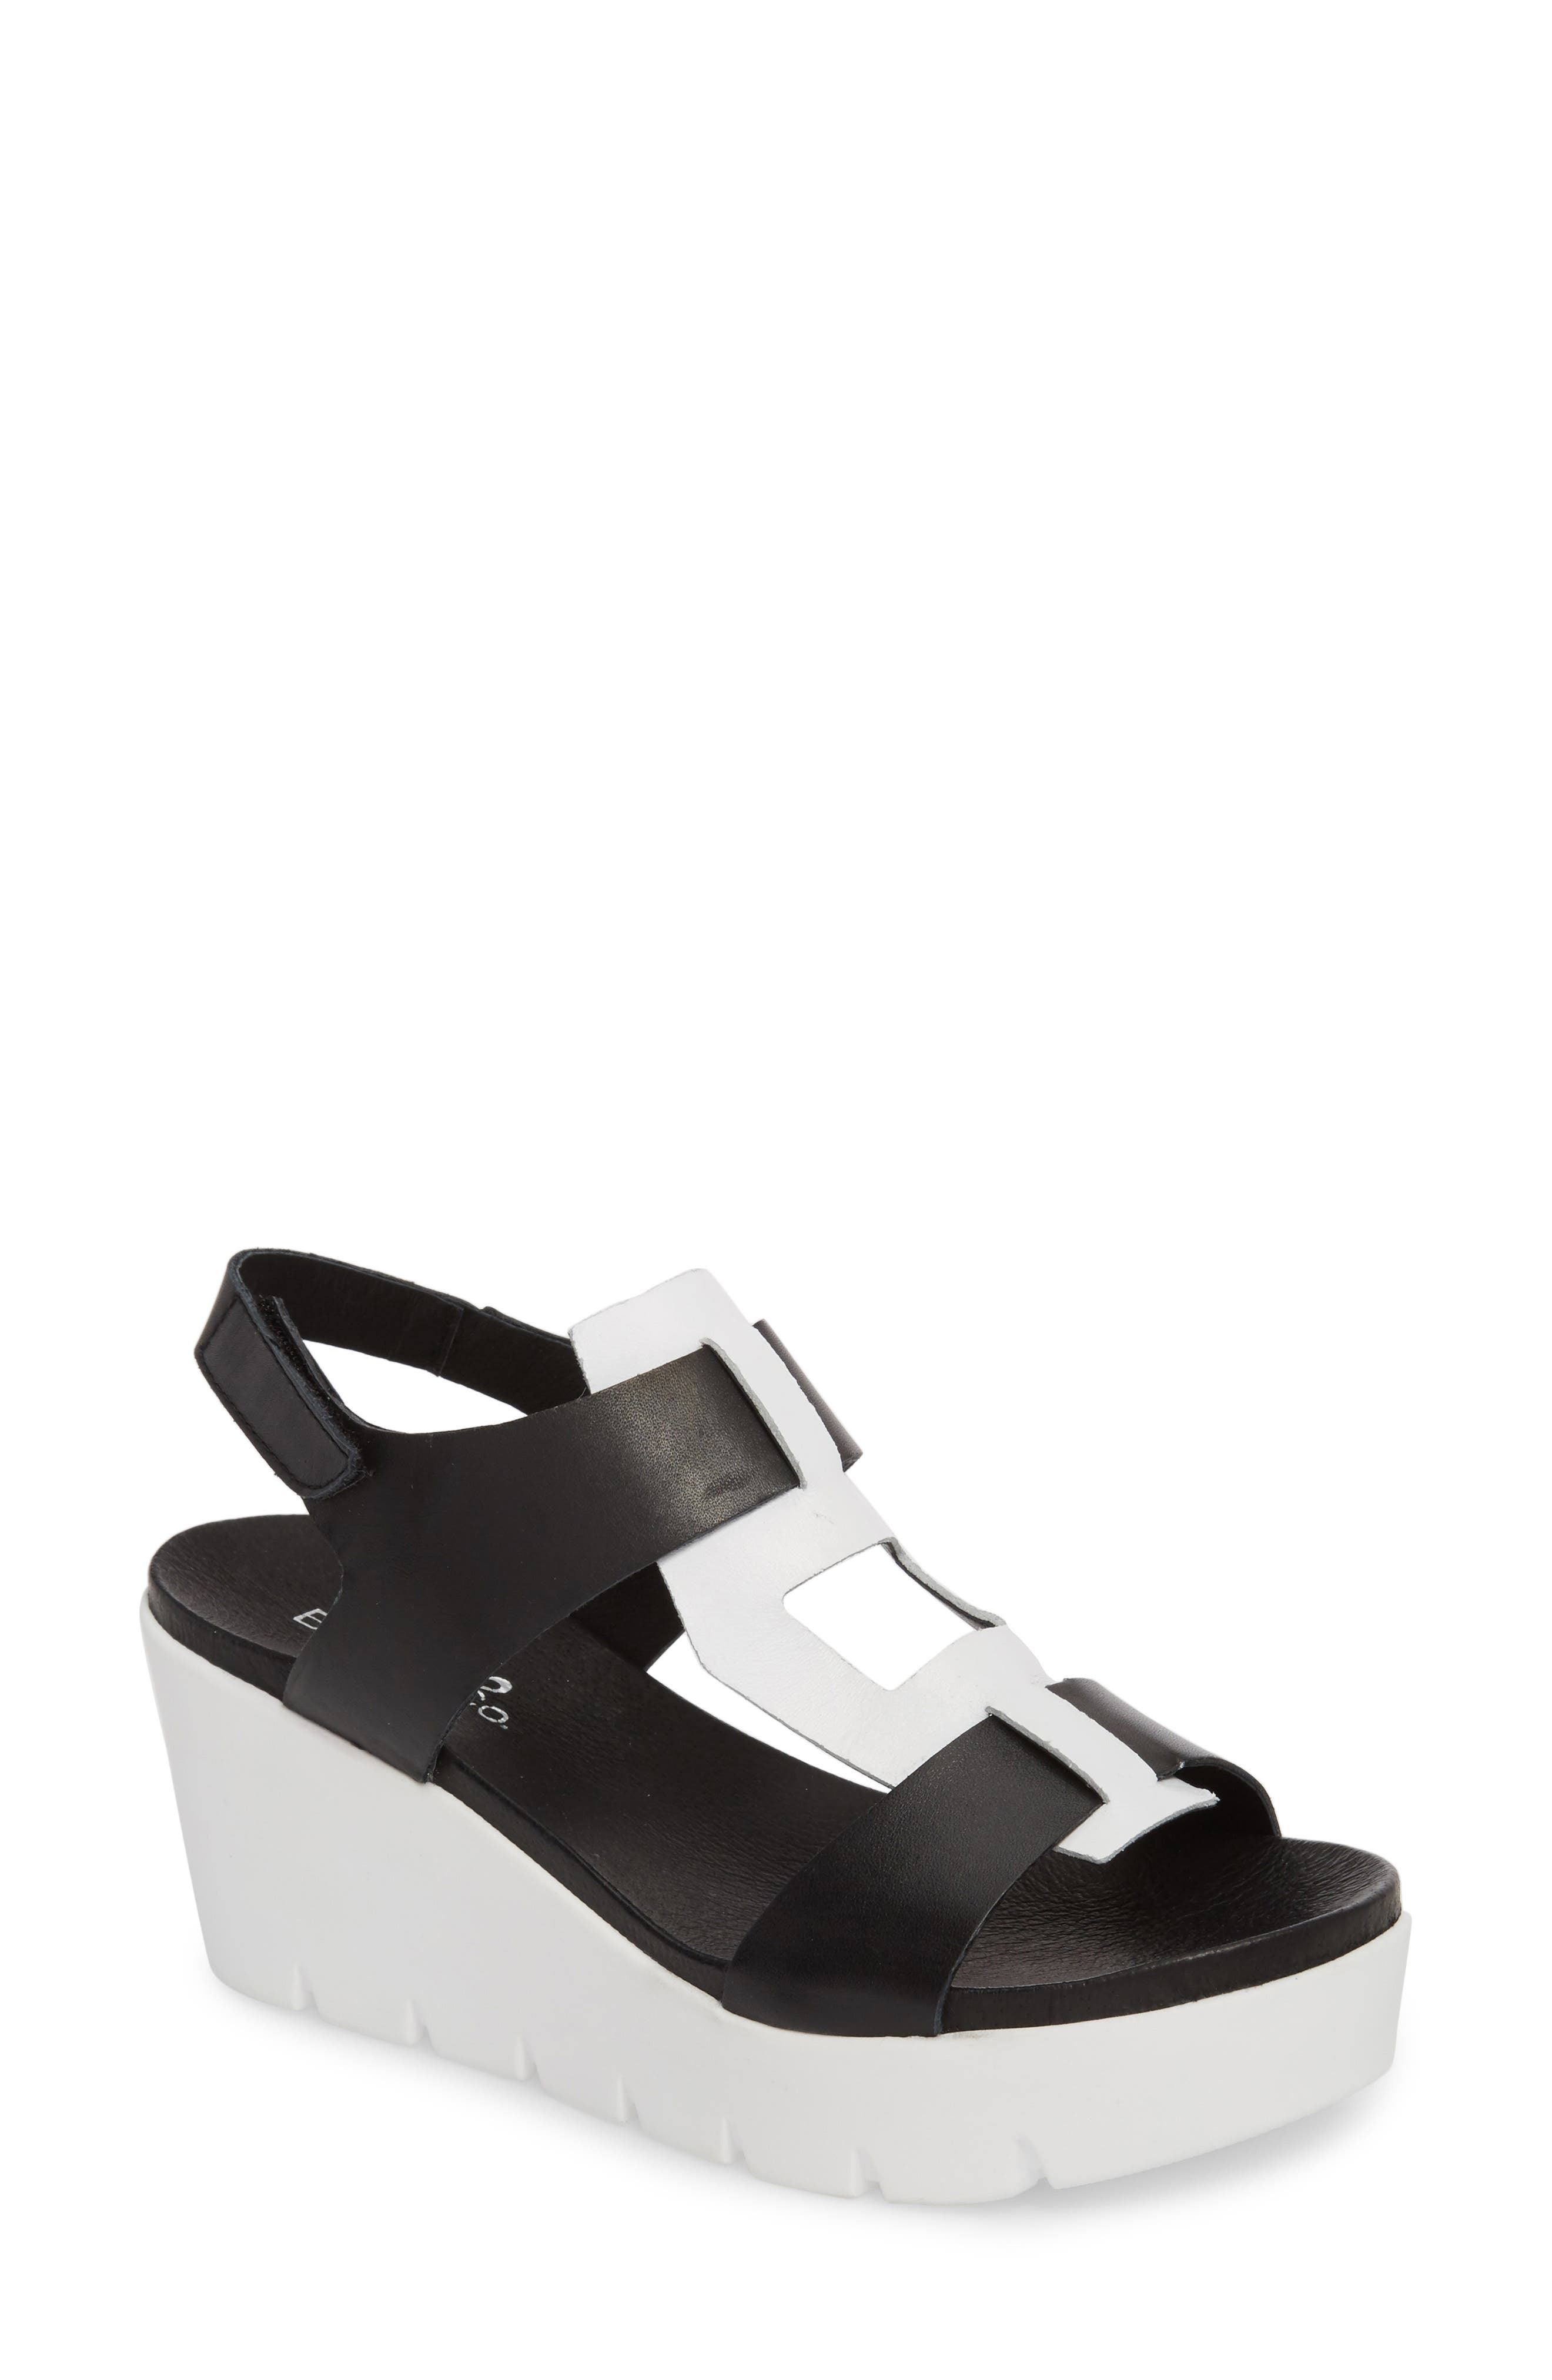 Bos. & Co. Somo Platform Wedge Sandal (Women)